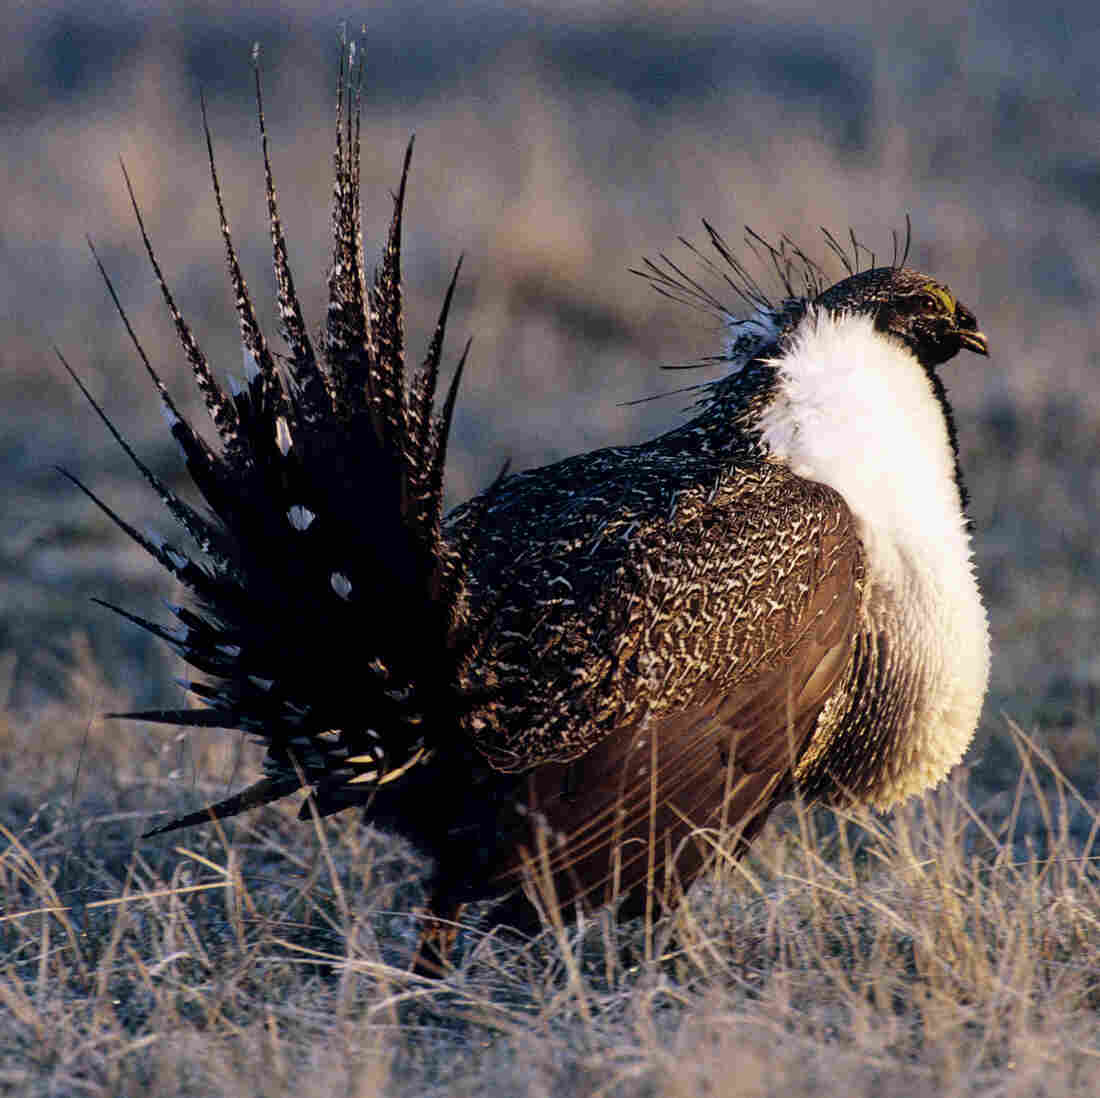 Researchers are using small remote-controlled planes to survey the populations of the greater sage grouse.